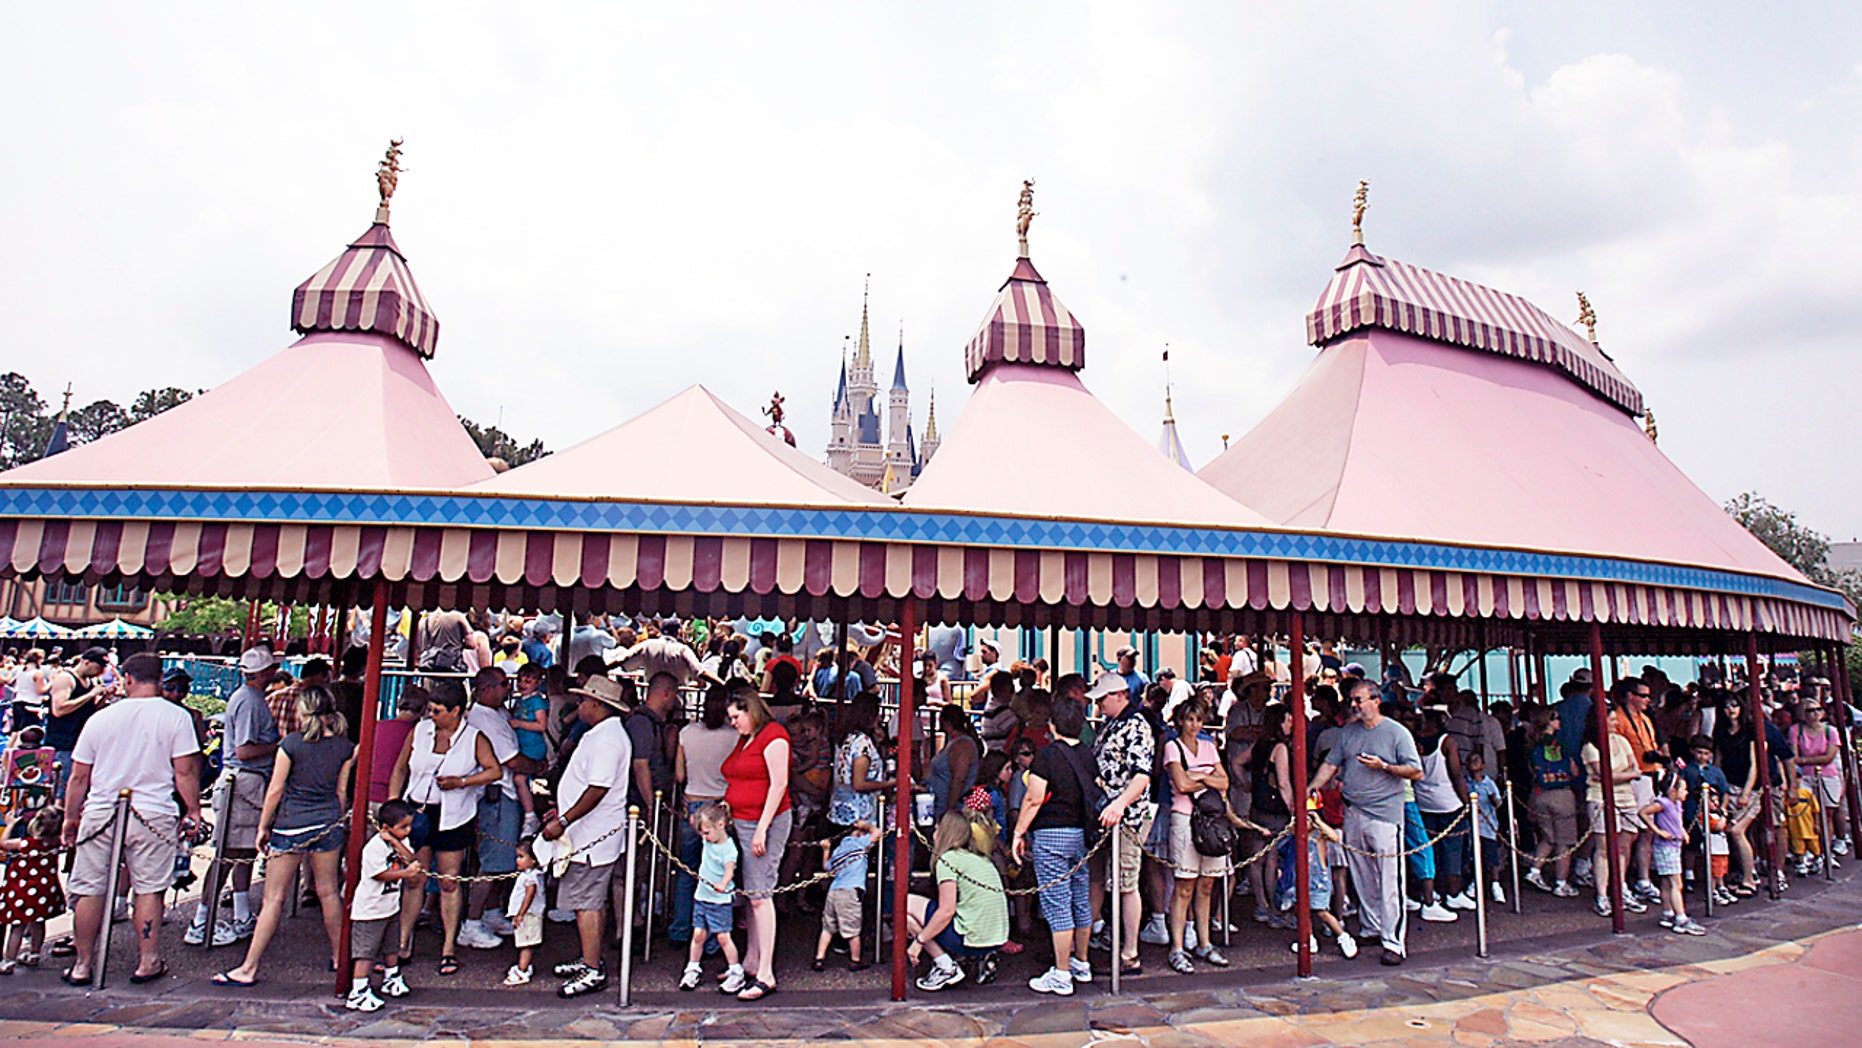 Disney has made major changes to the Dumbo ride at Magic Kingdom at Walt Disney World. Here, guests are seen snaking through the line in this May 2007 file photo.